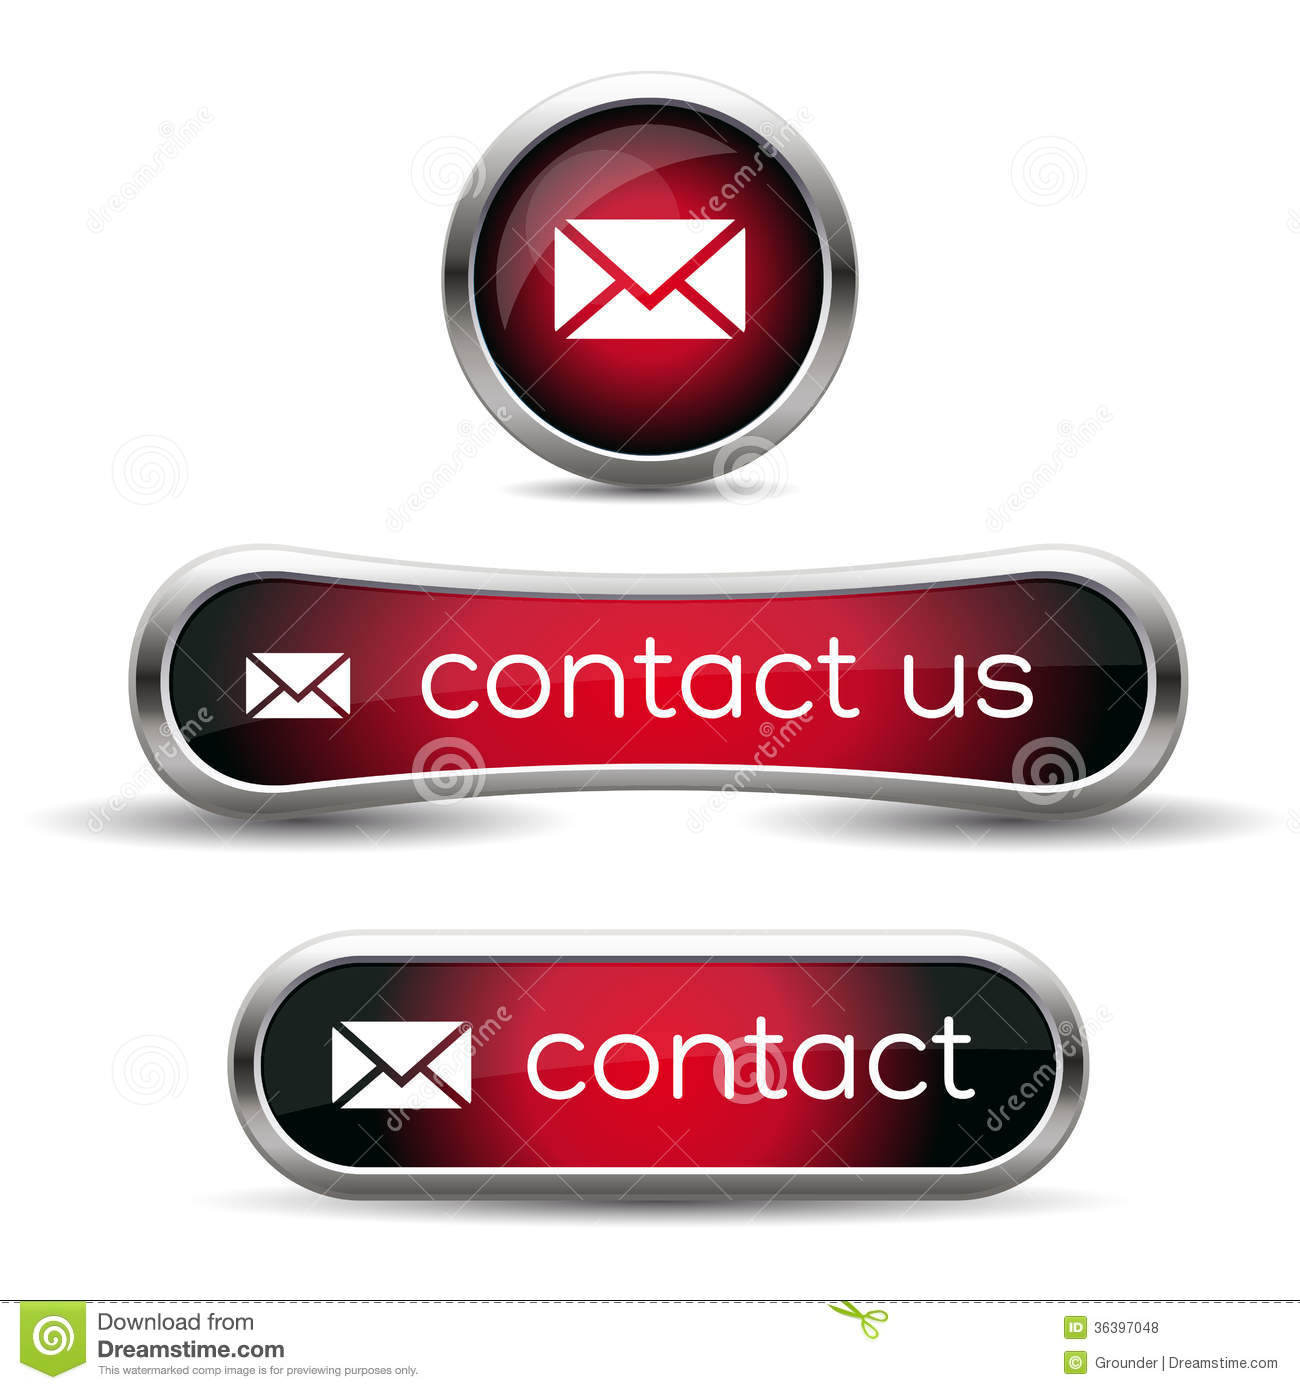 Contact Us Icon Royalty Free Stock Photos - Image: 36397048